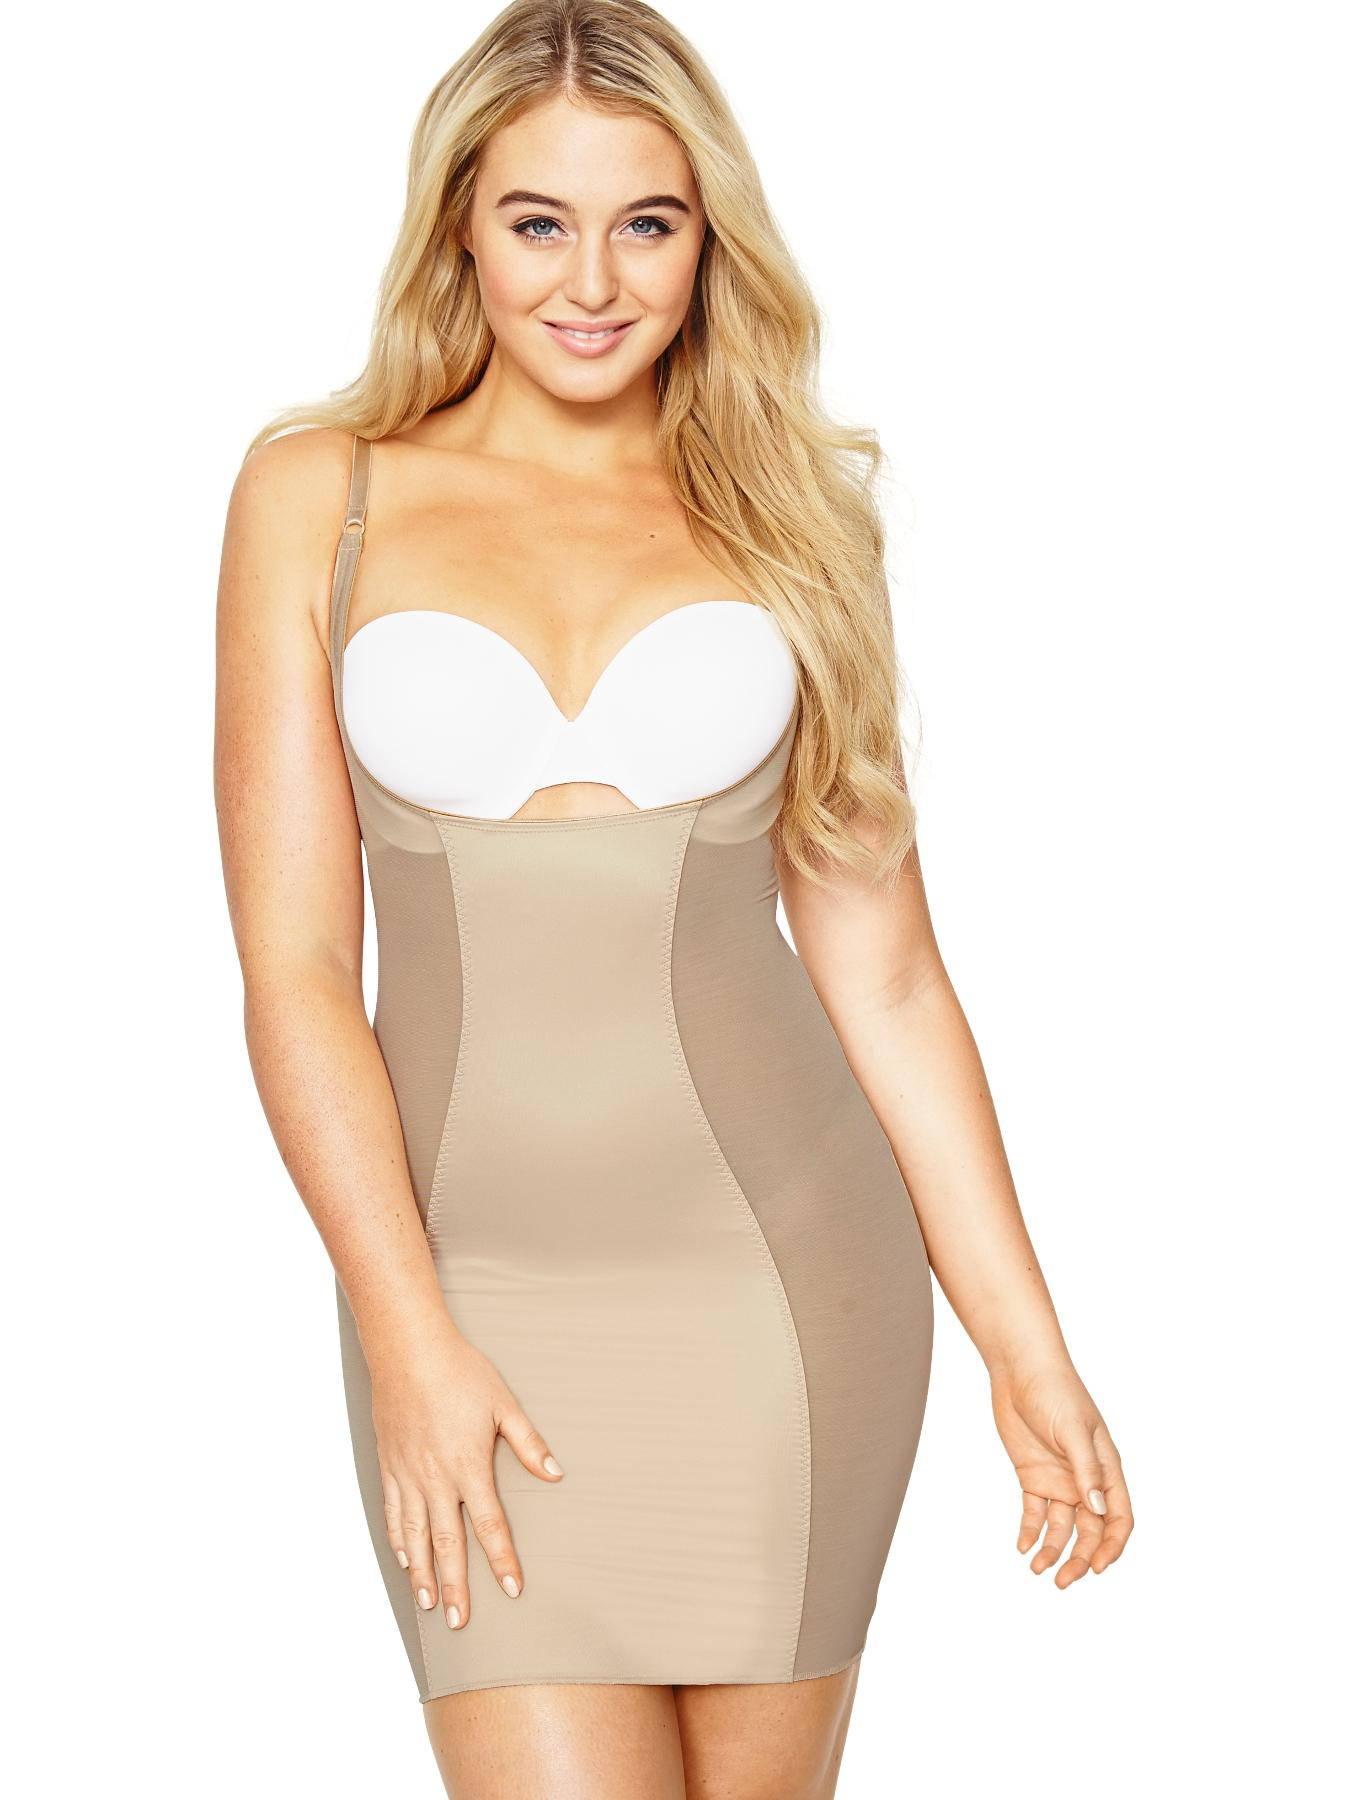 j lo plus size clothes